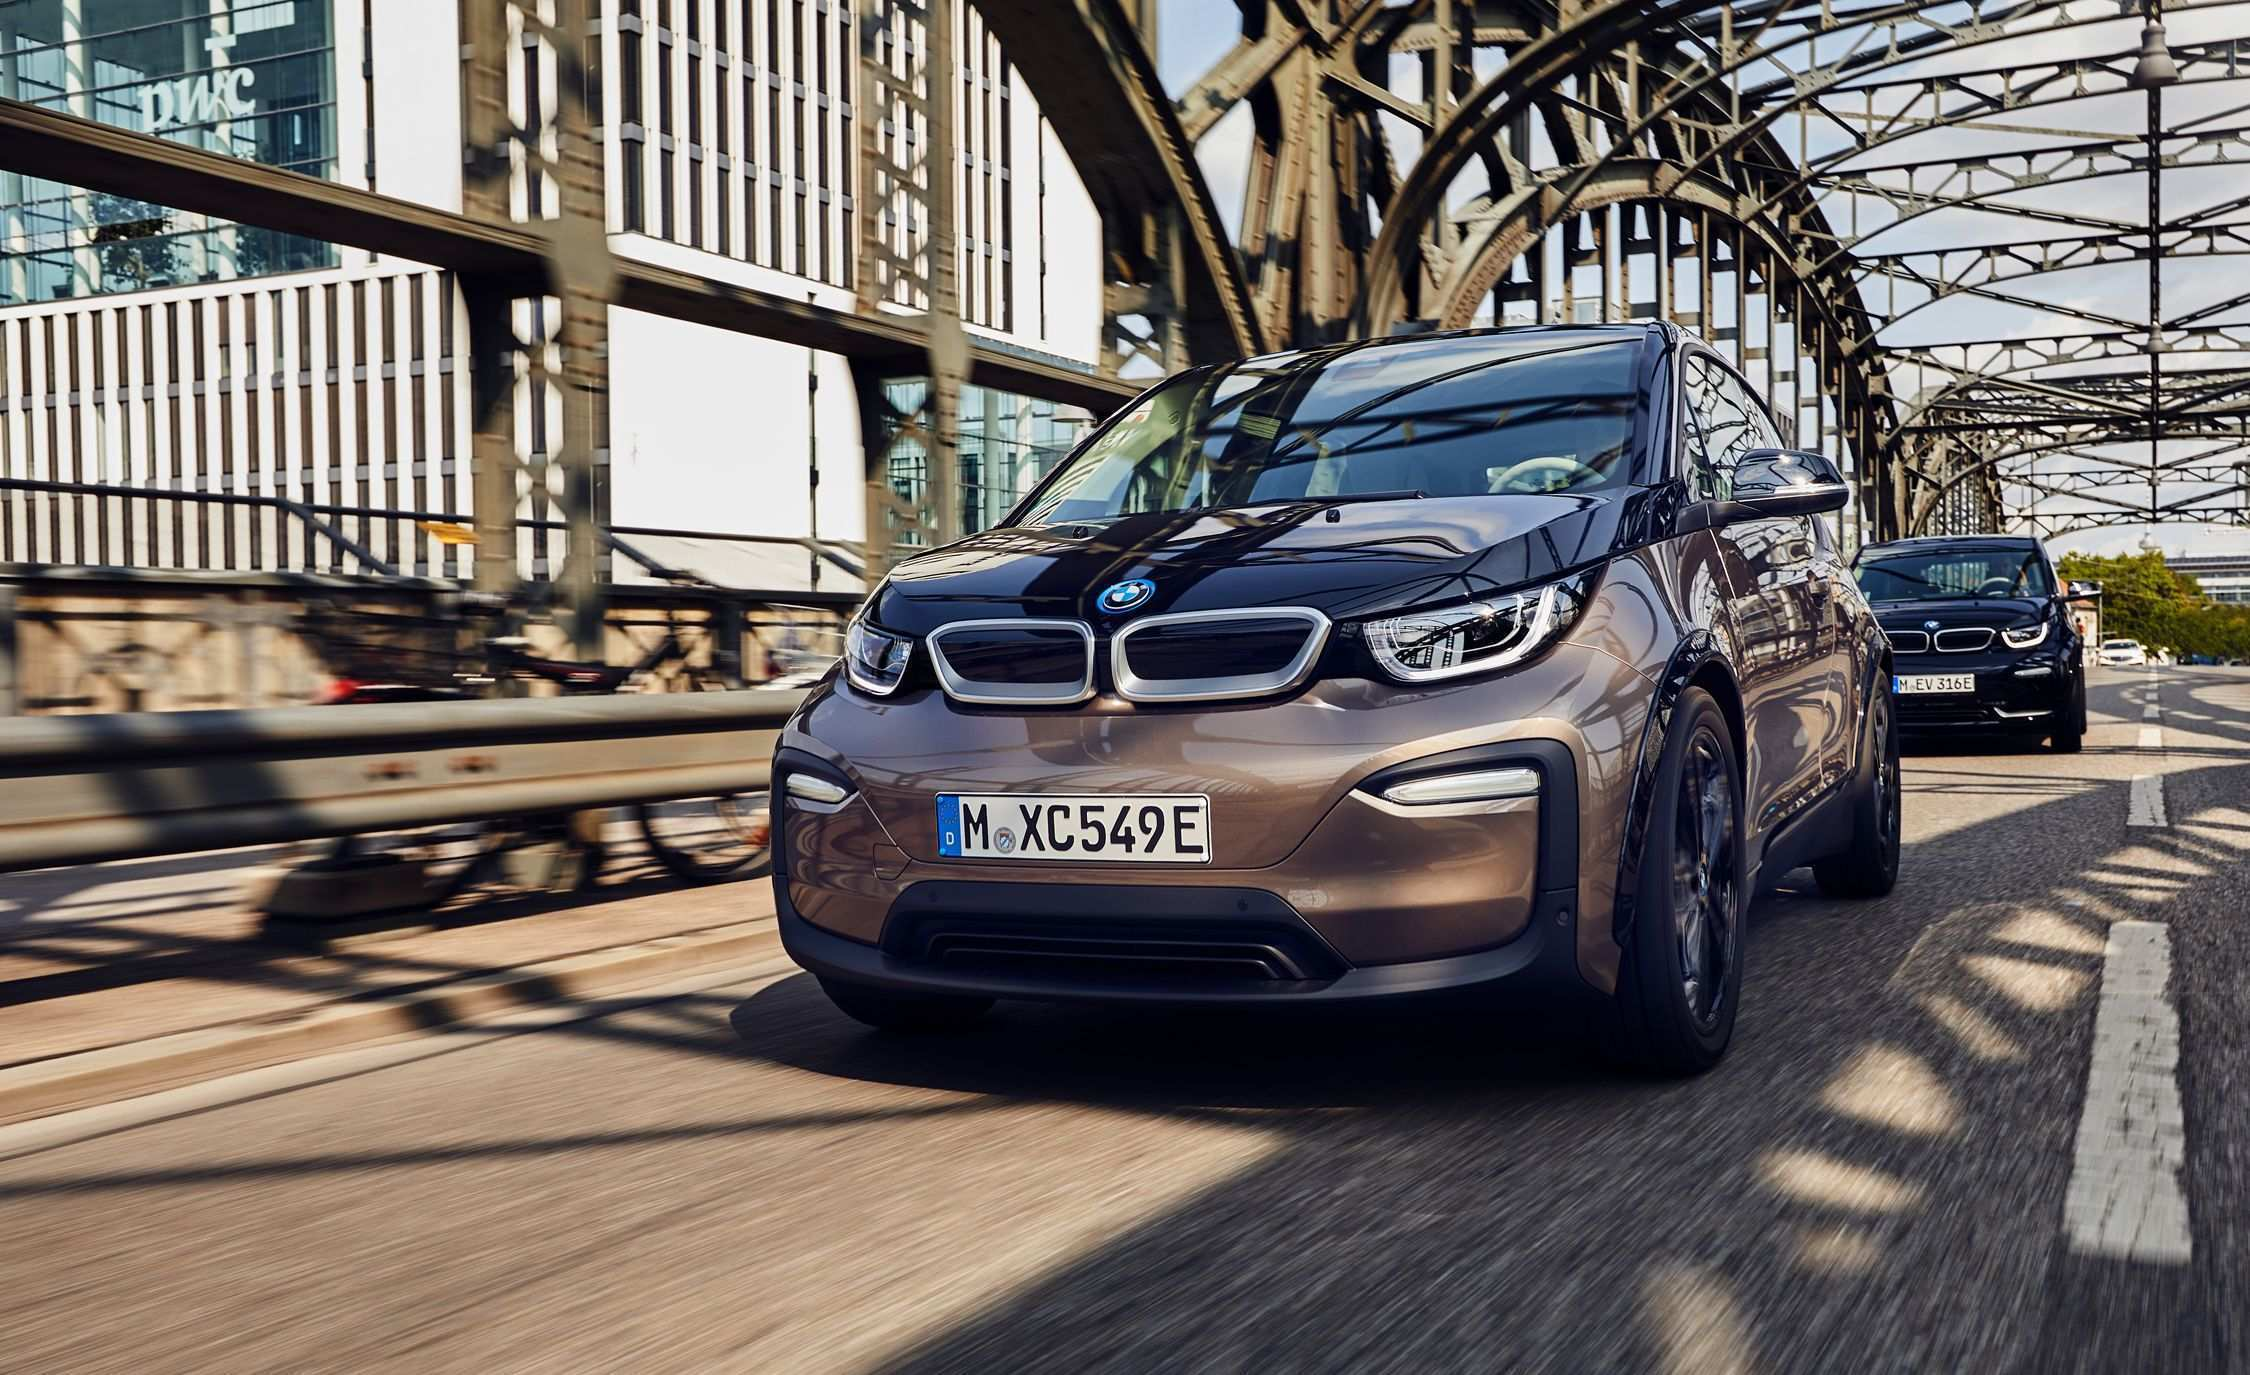 35 Concept of 2019 Bmw Ev Pictures by 2019 Bmw Ev